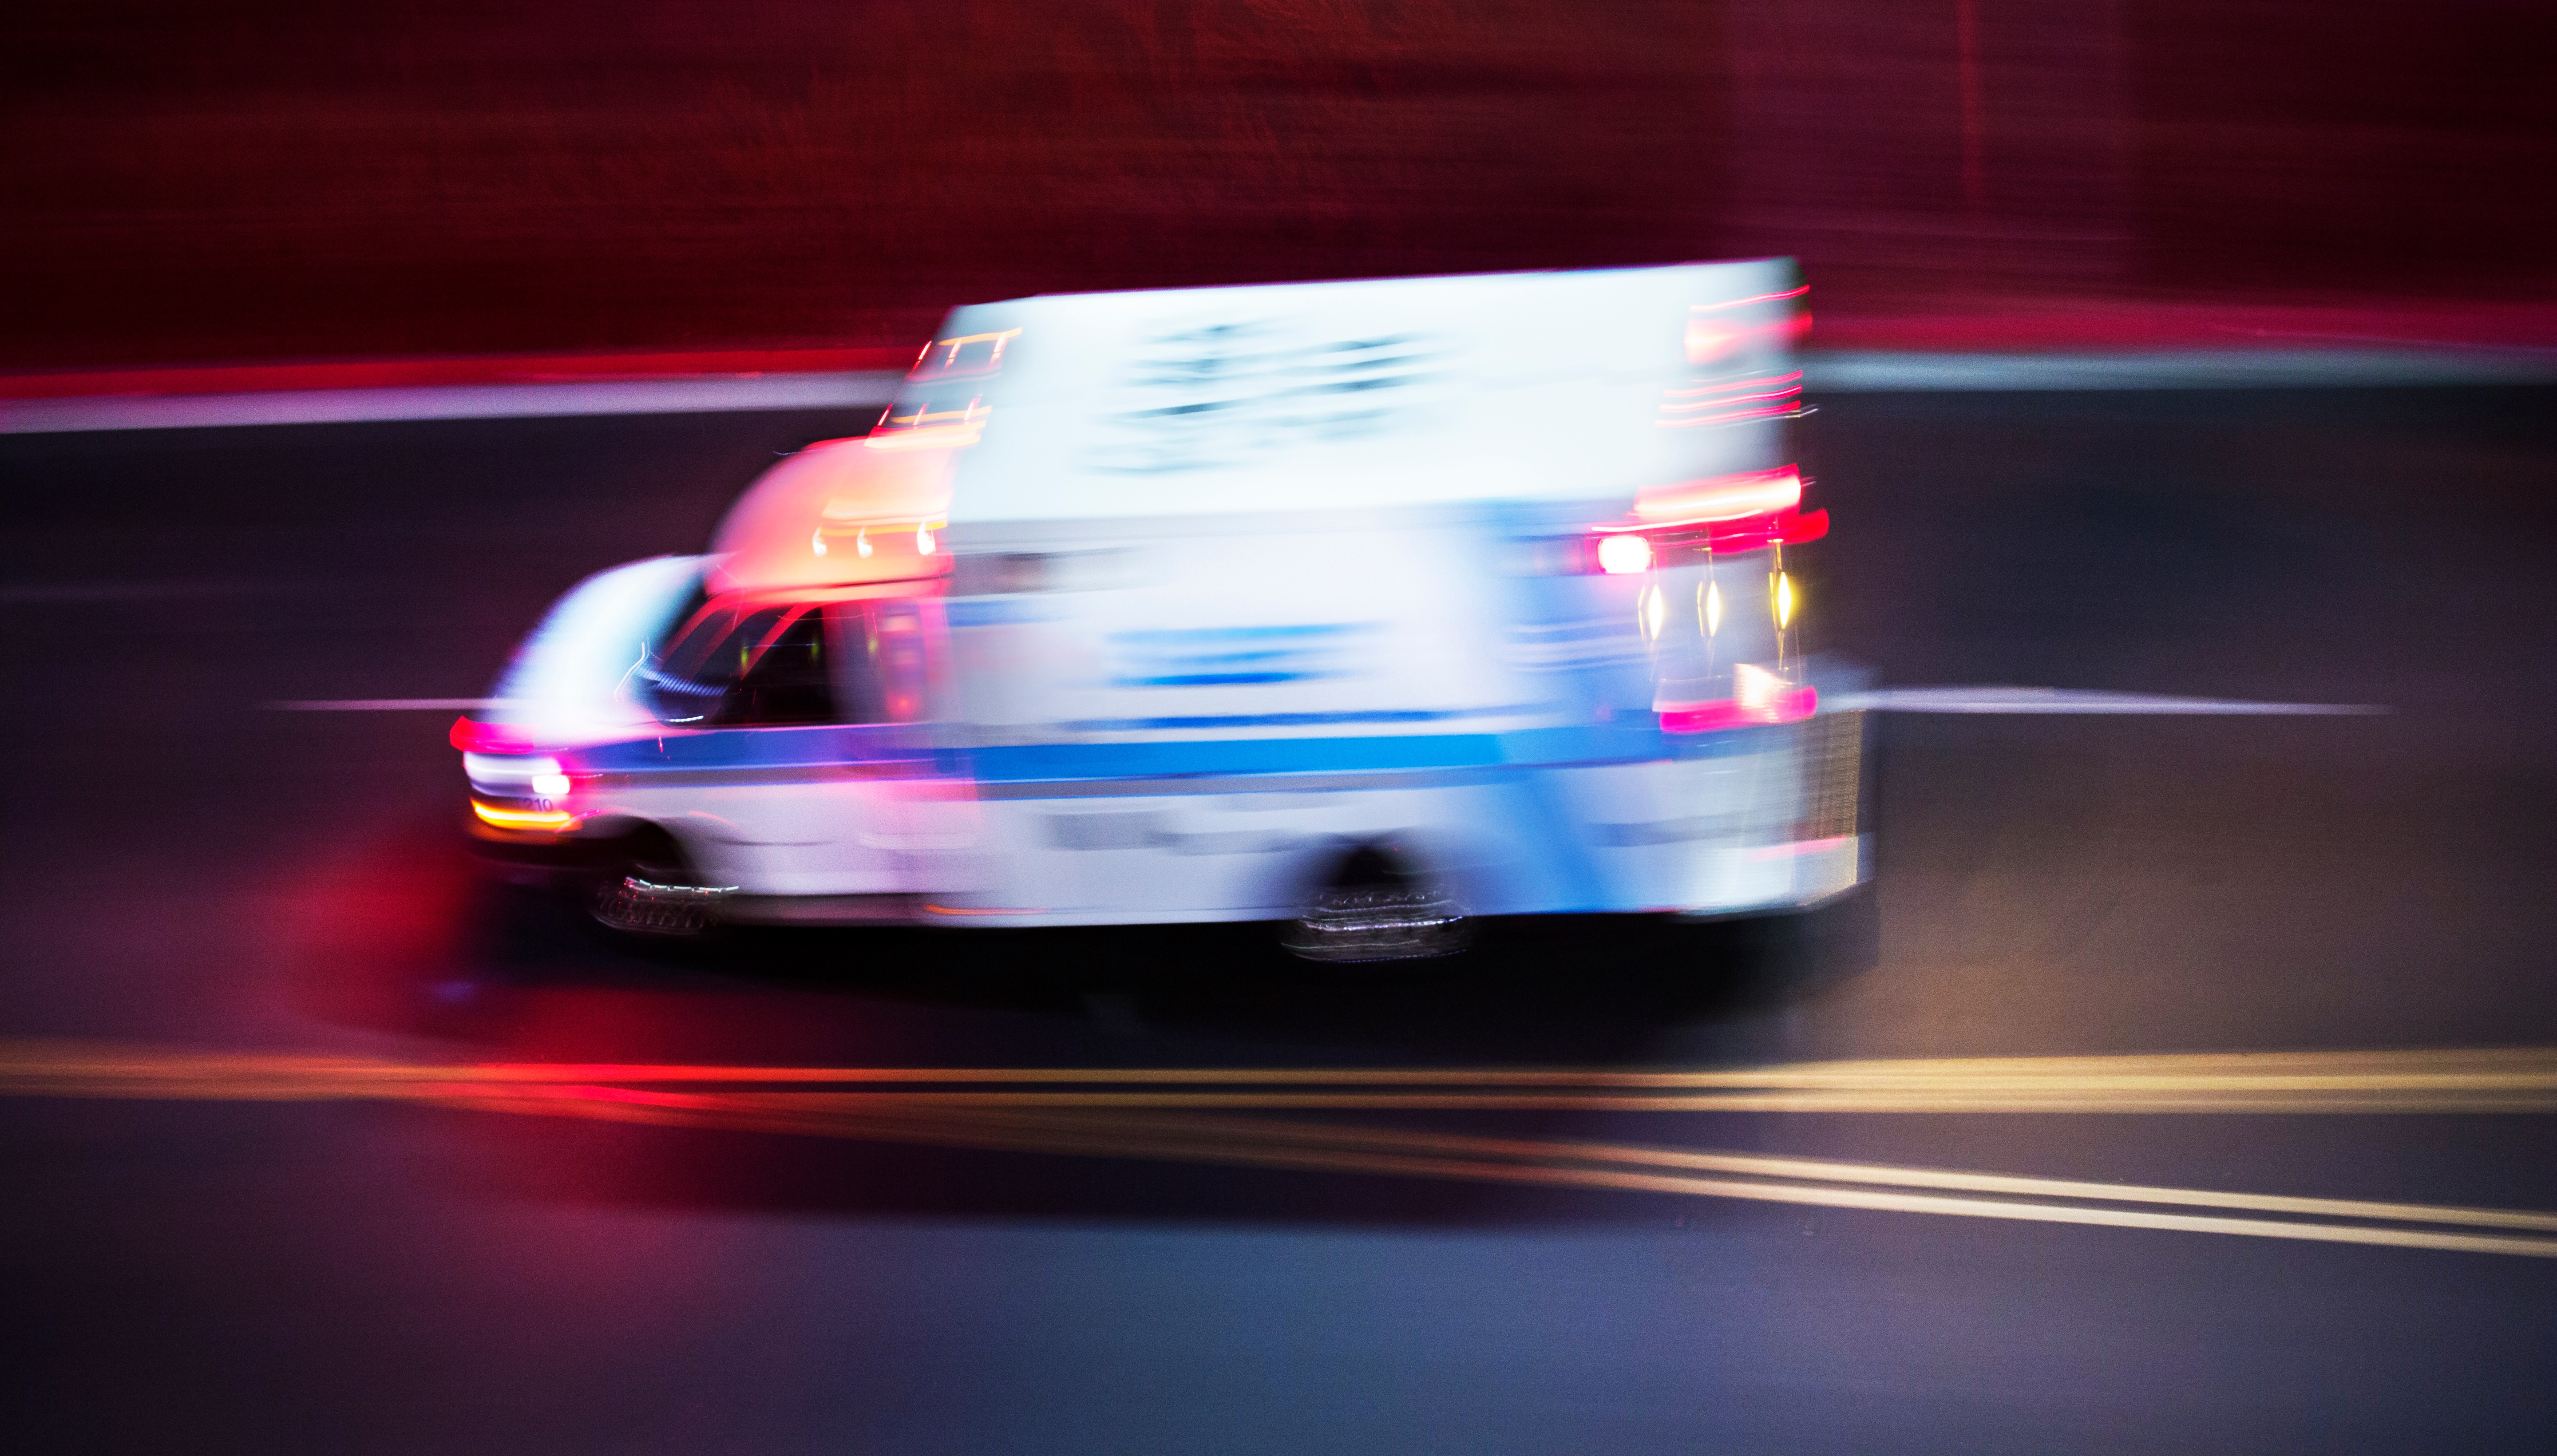 McGowan_Lights and Sirens_ambulance.jpg